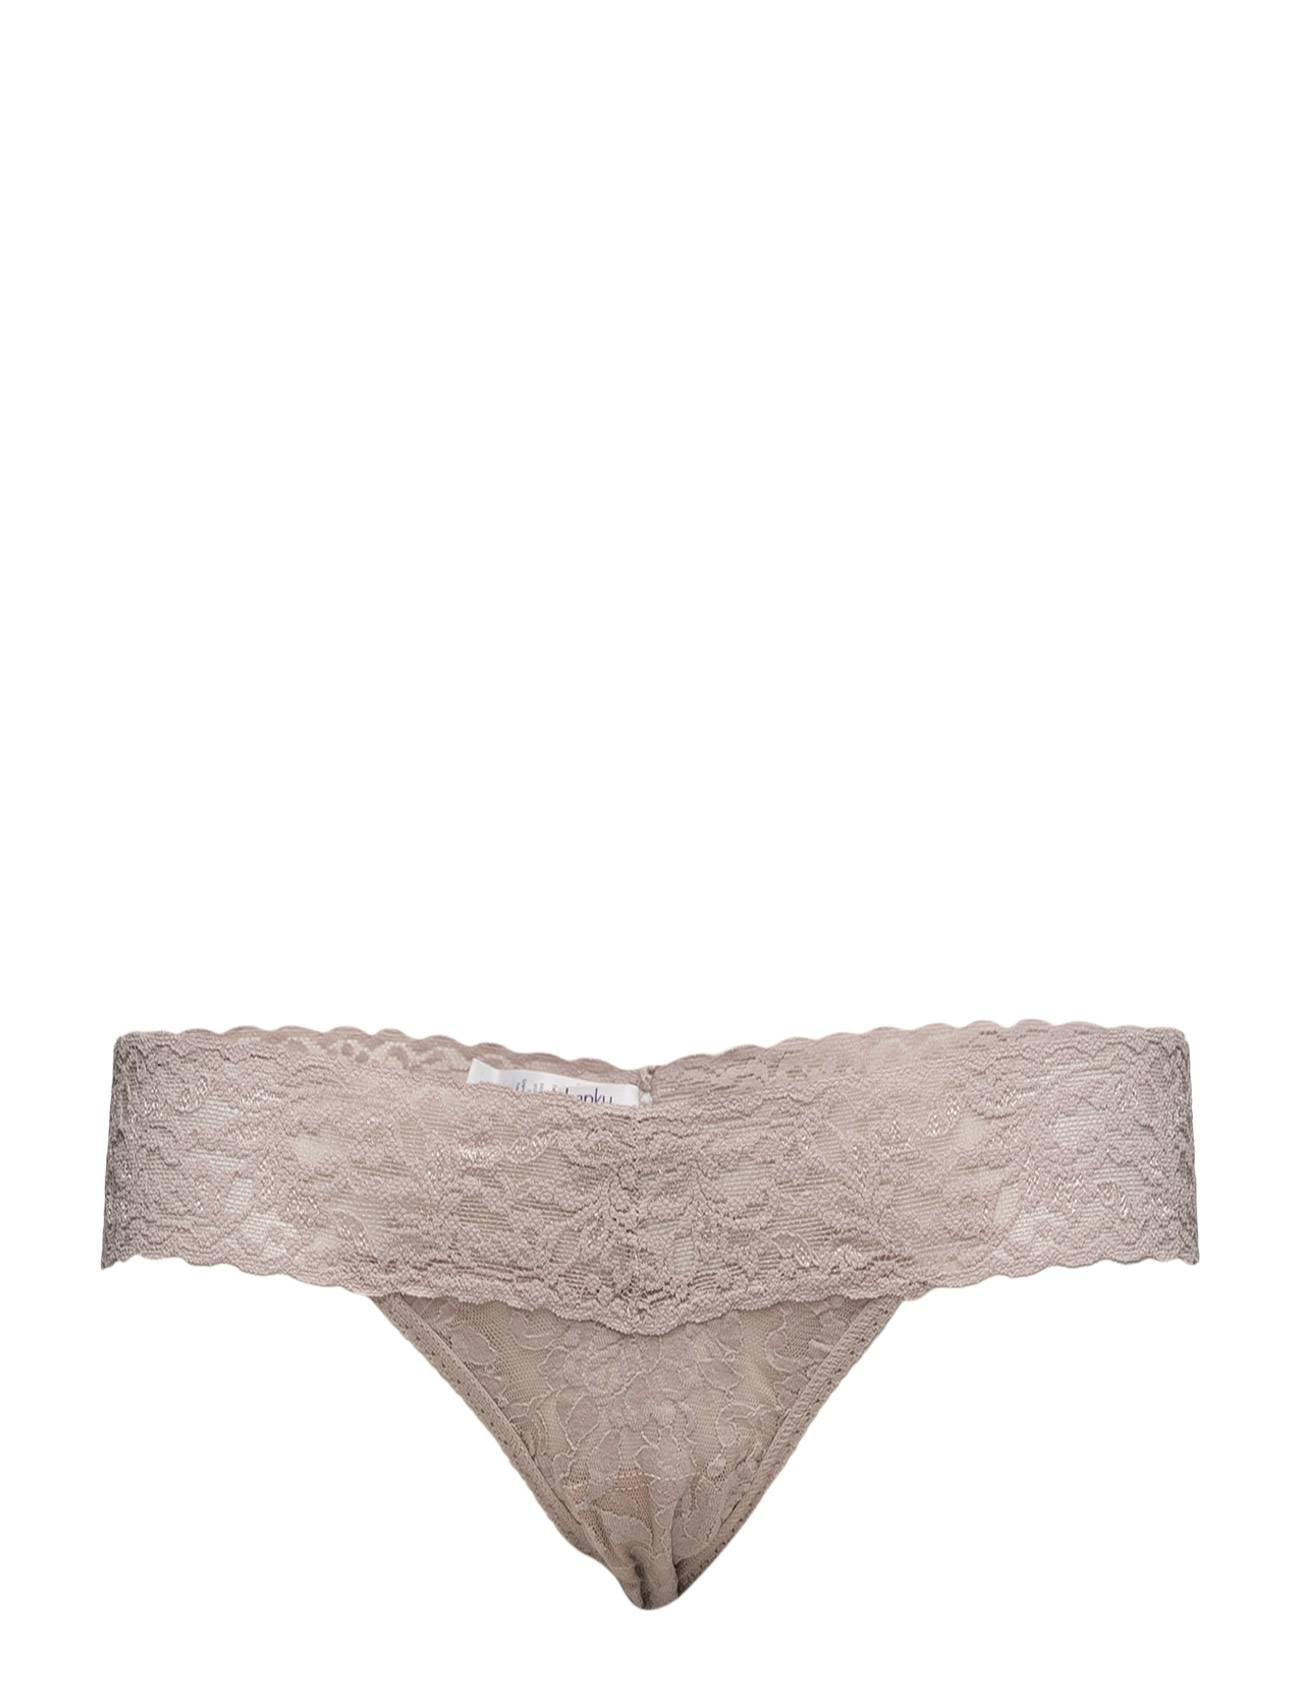 Hanky Panky Low Rise Thong Signature Lace